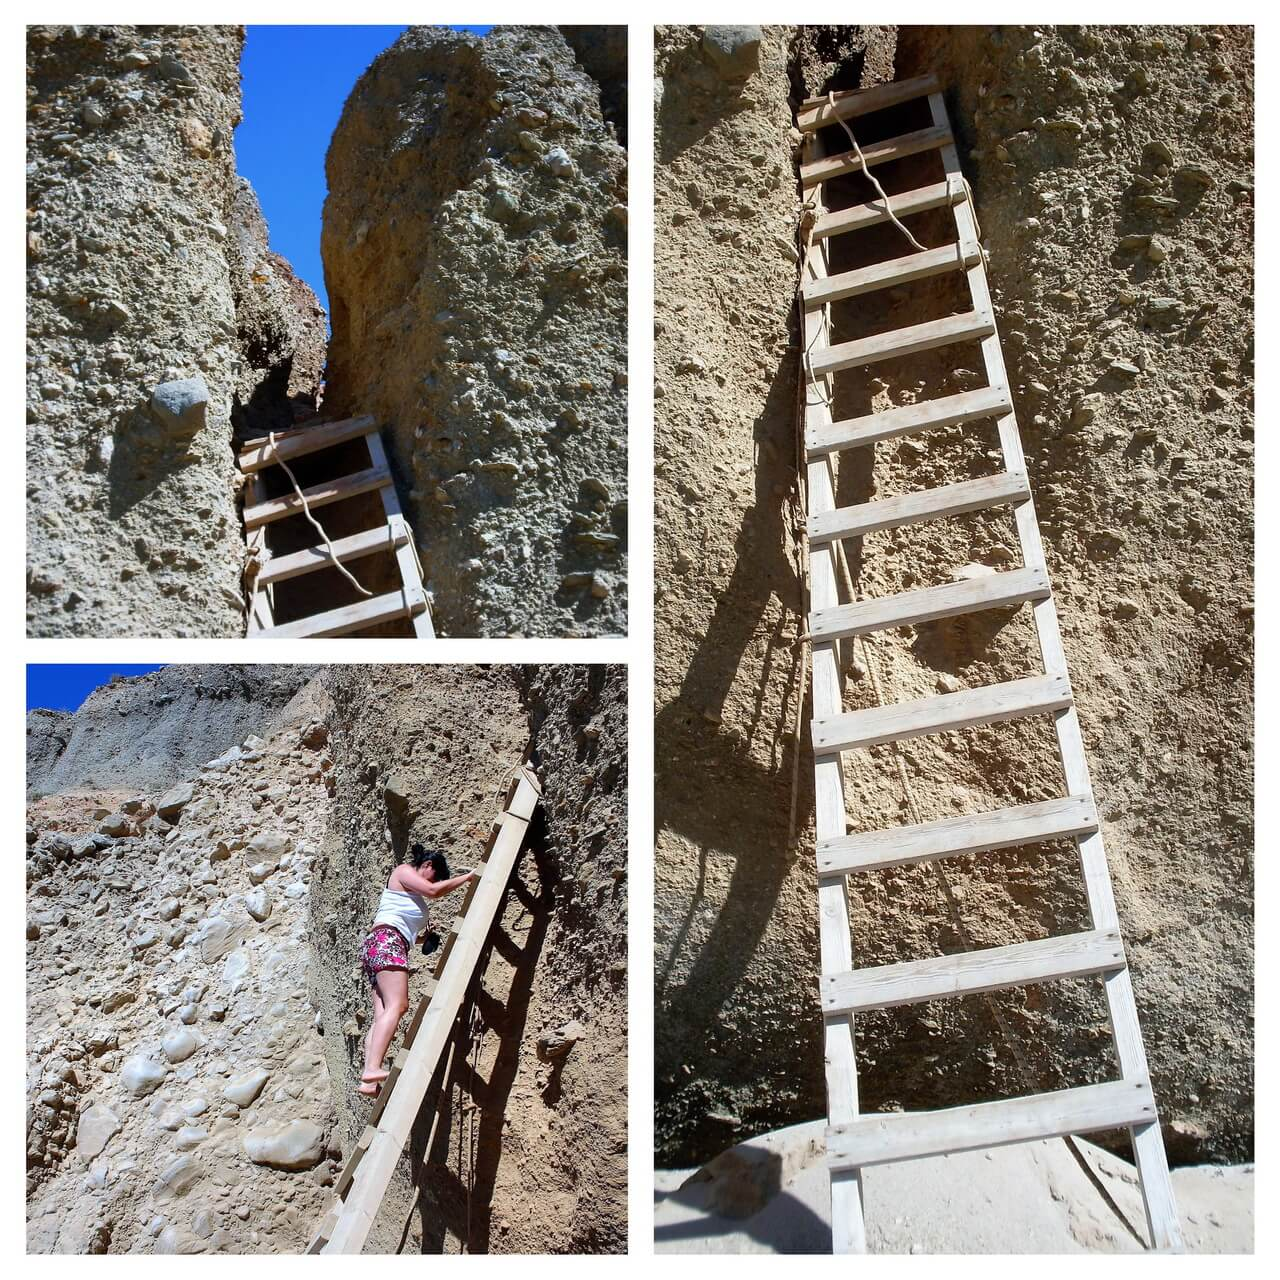 The wooden ladders on the Tsigrado beach